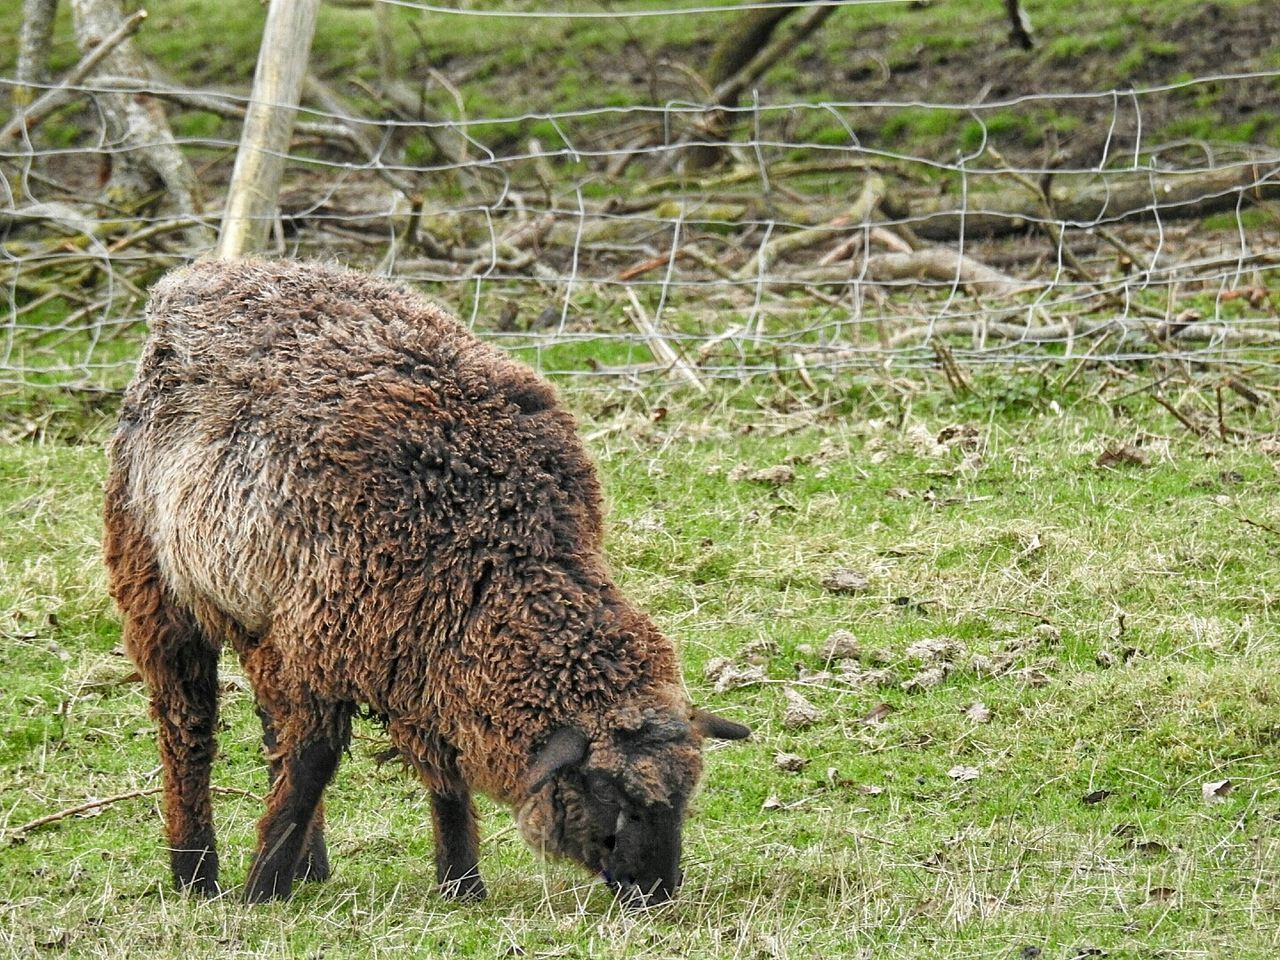 Sheep Ewe Bovine Animal Themes One Animal Mammal Animals In The Wild Nature Grass No People Animal Wildlife Outdoors Day Field Animals In The Wild Beauty In Nature Nature Grass Grazing Domestic Animals Brown